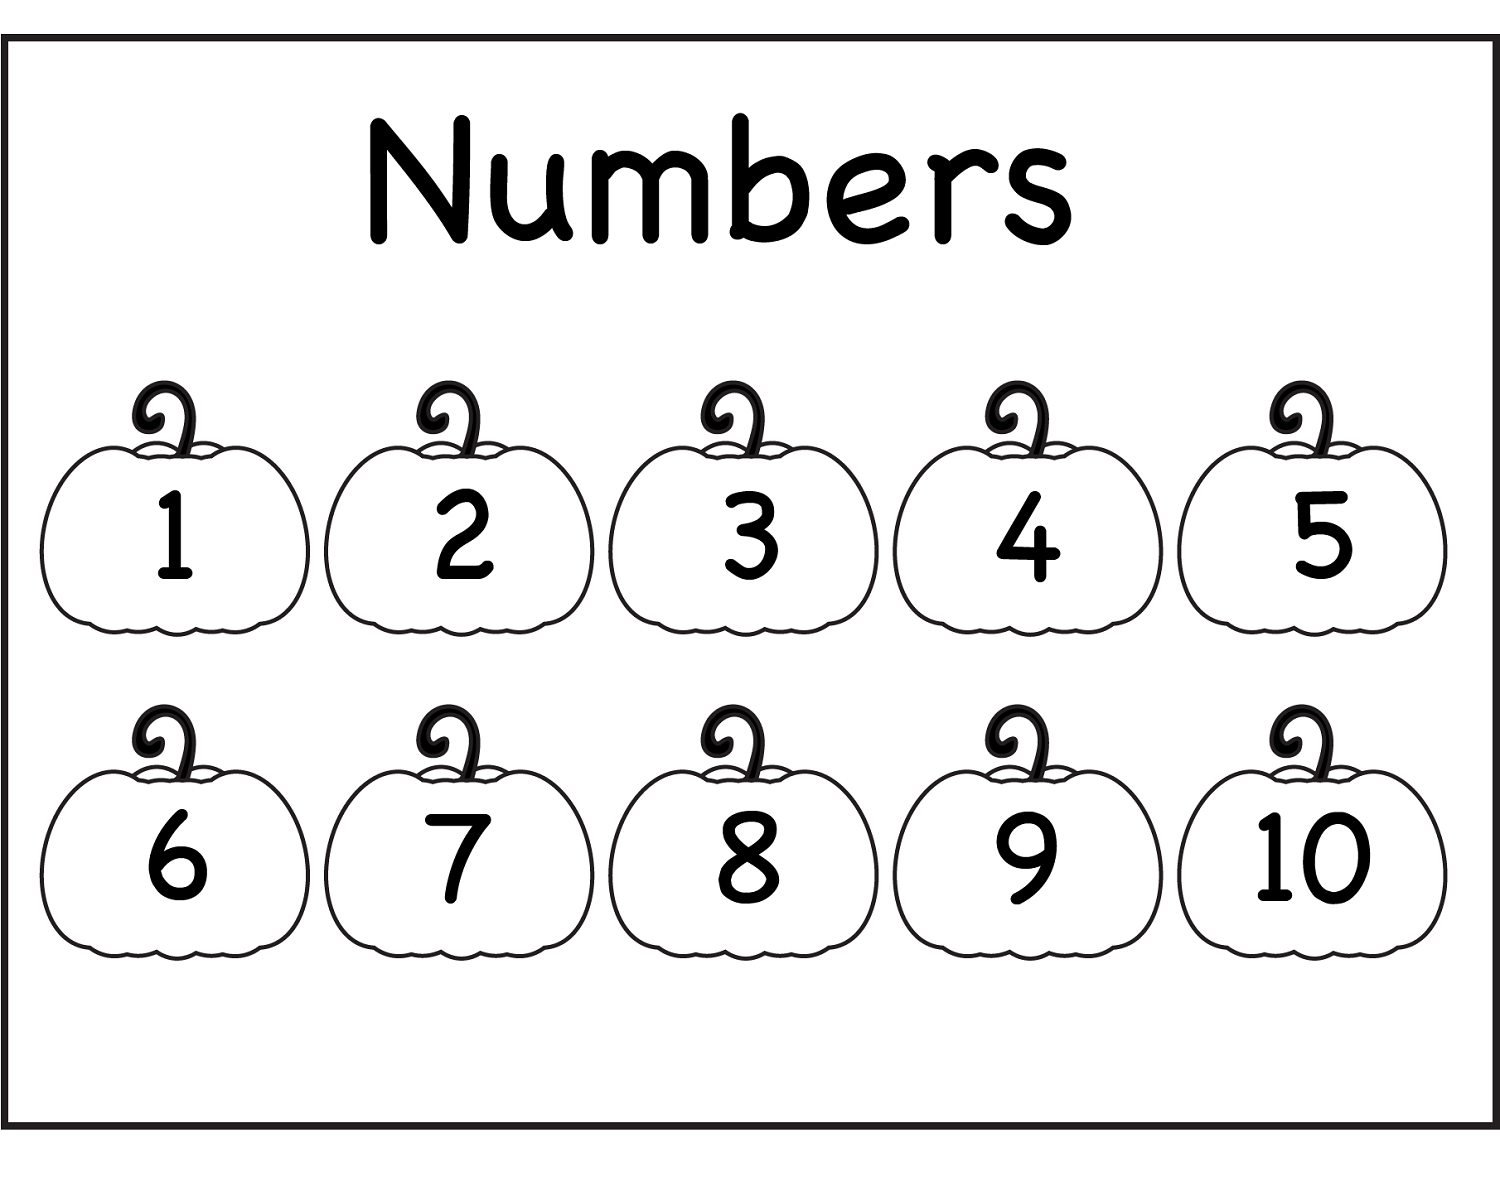 Traceable Number 1 10 For Numbering Lesson